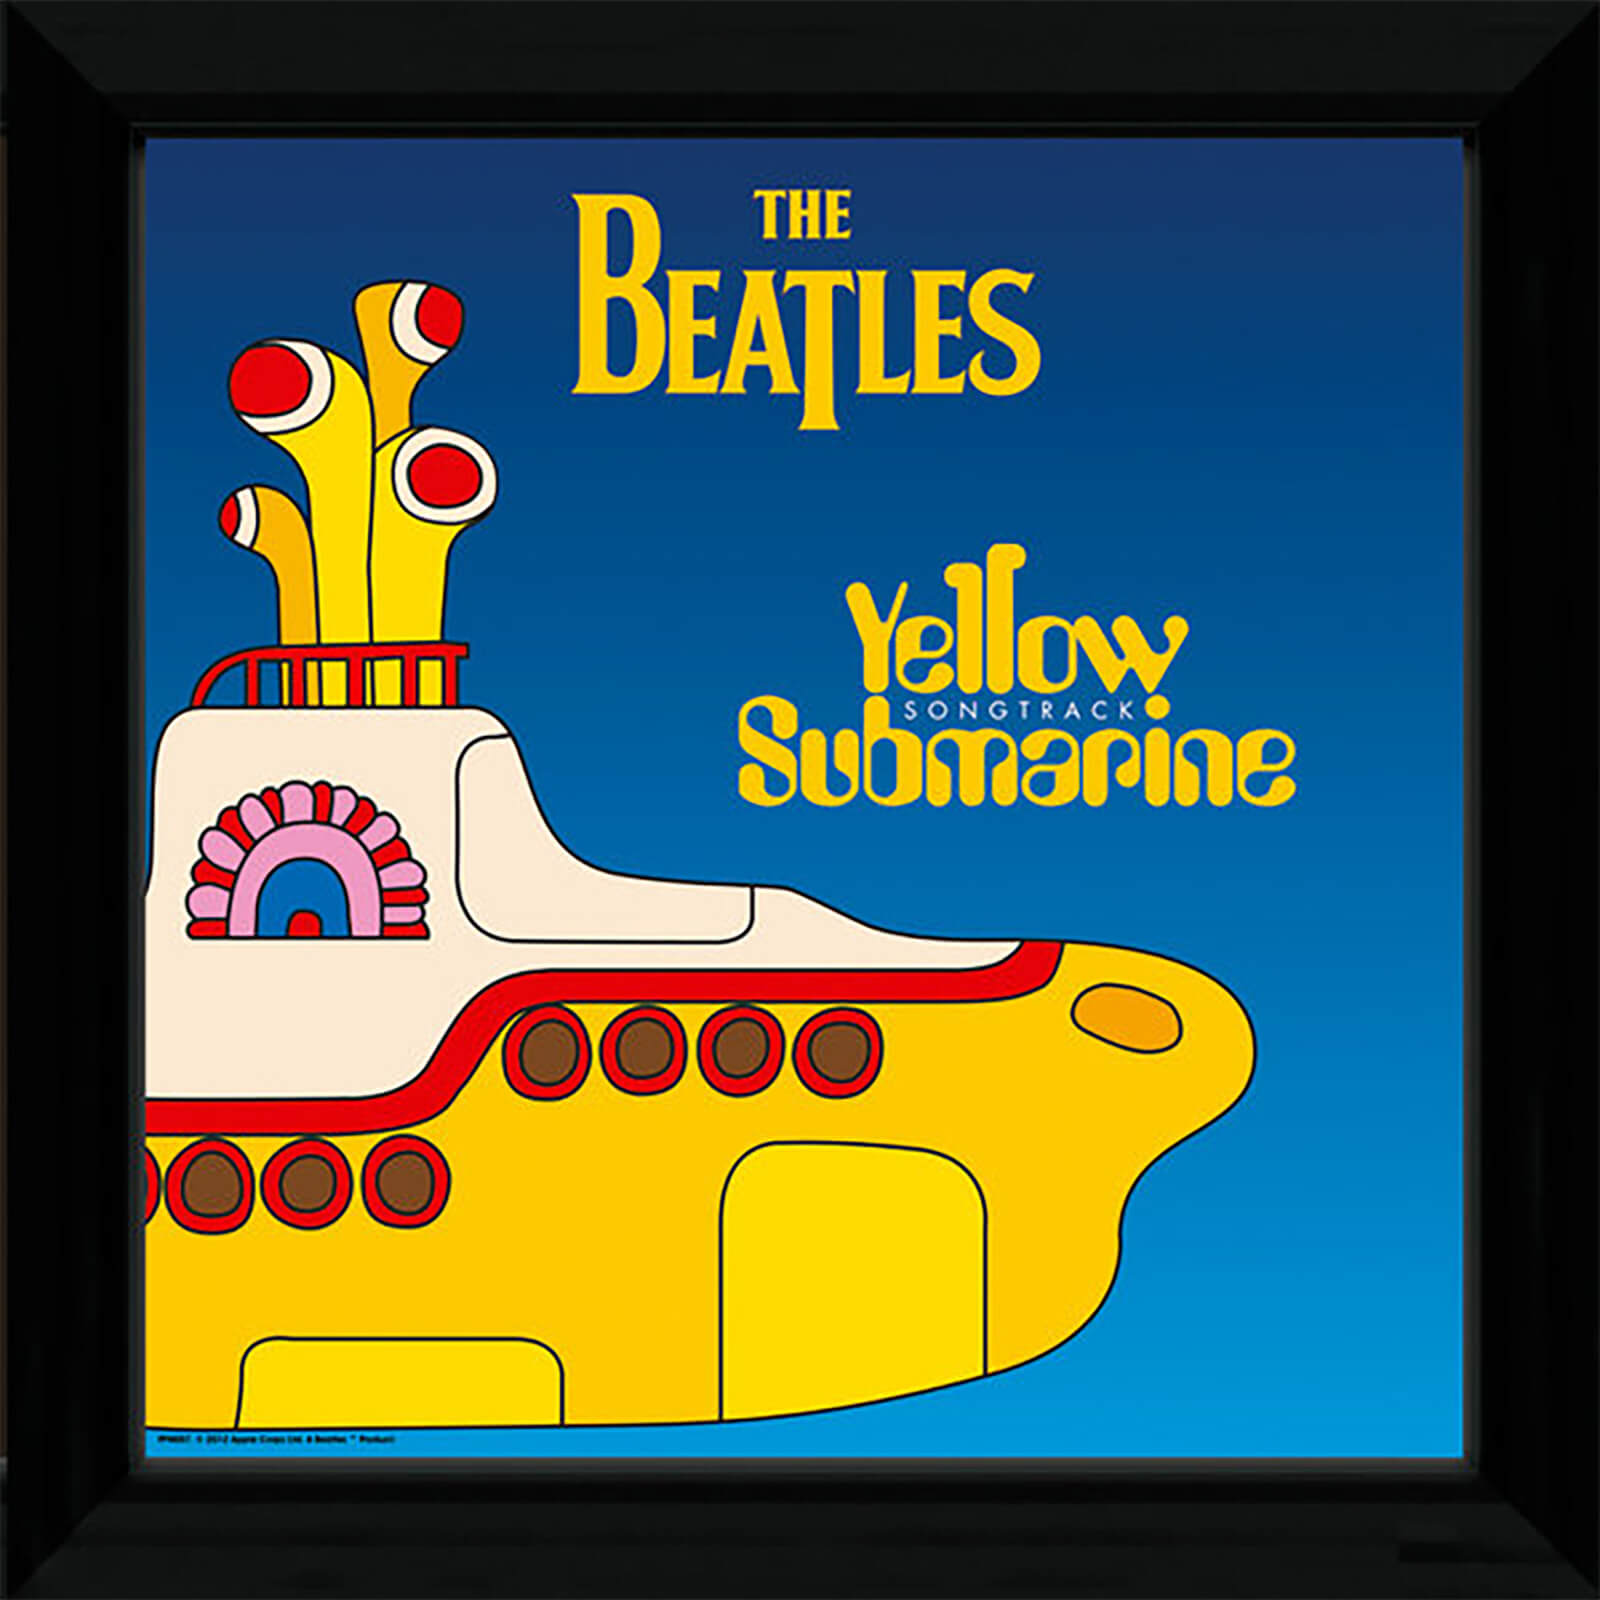 "The Beatles Yellow Submarine 1 - 12"""" x 12"""" Framed Album Prints"